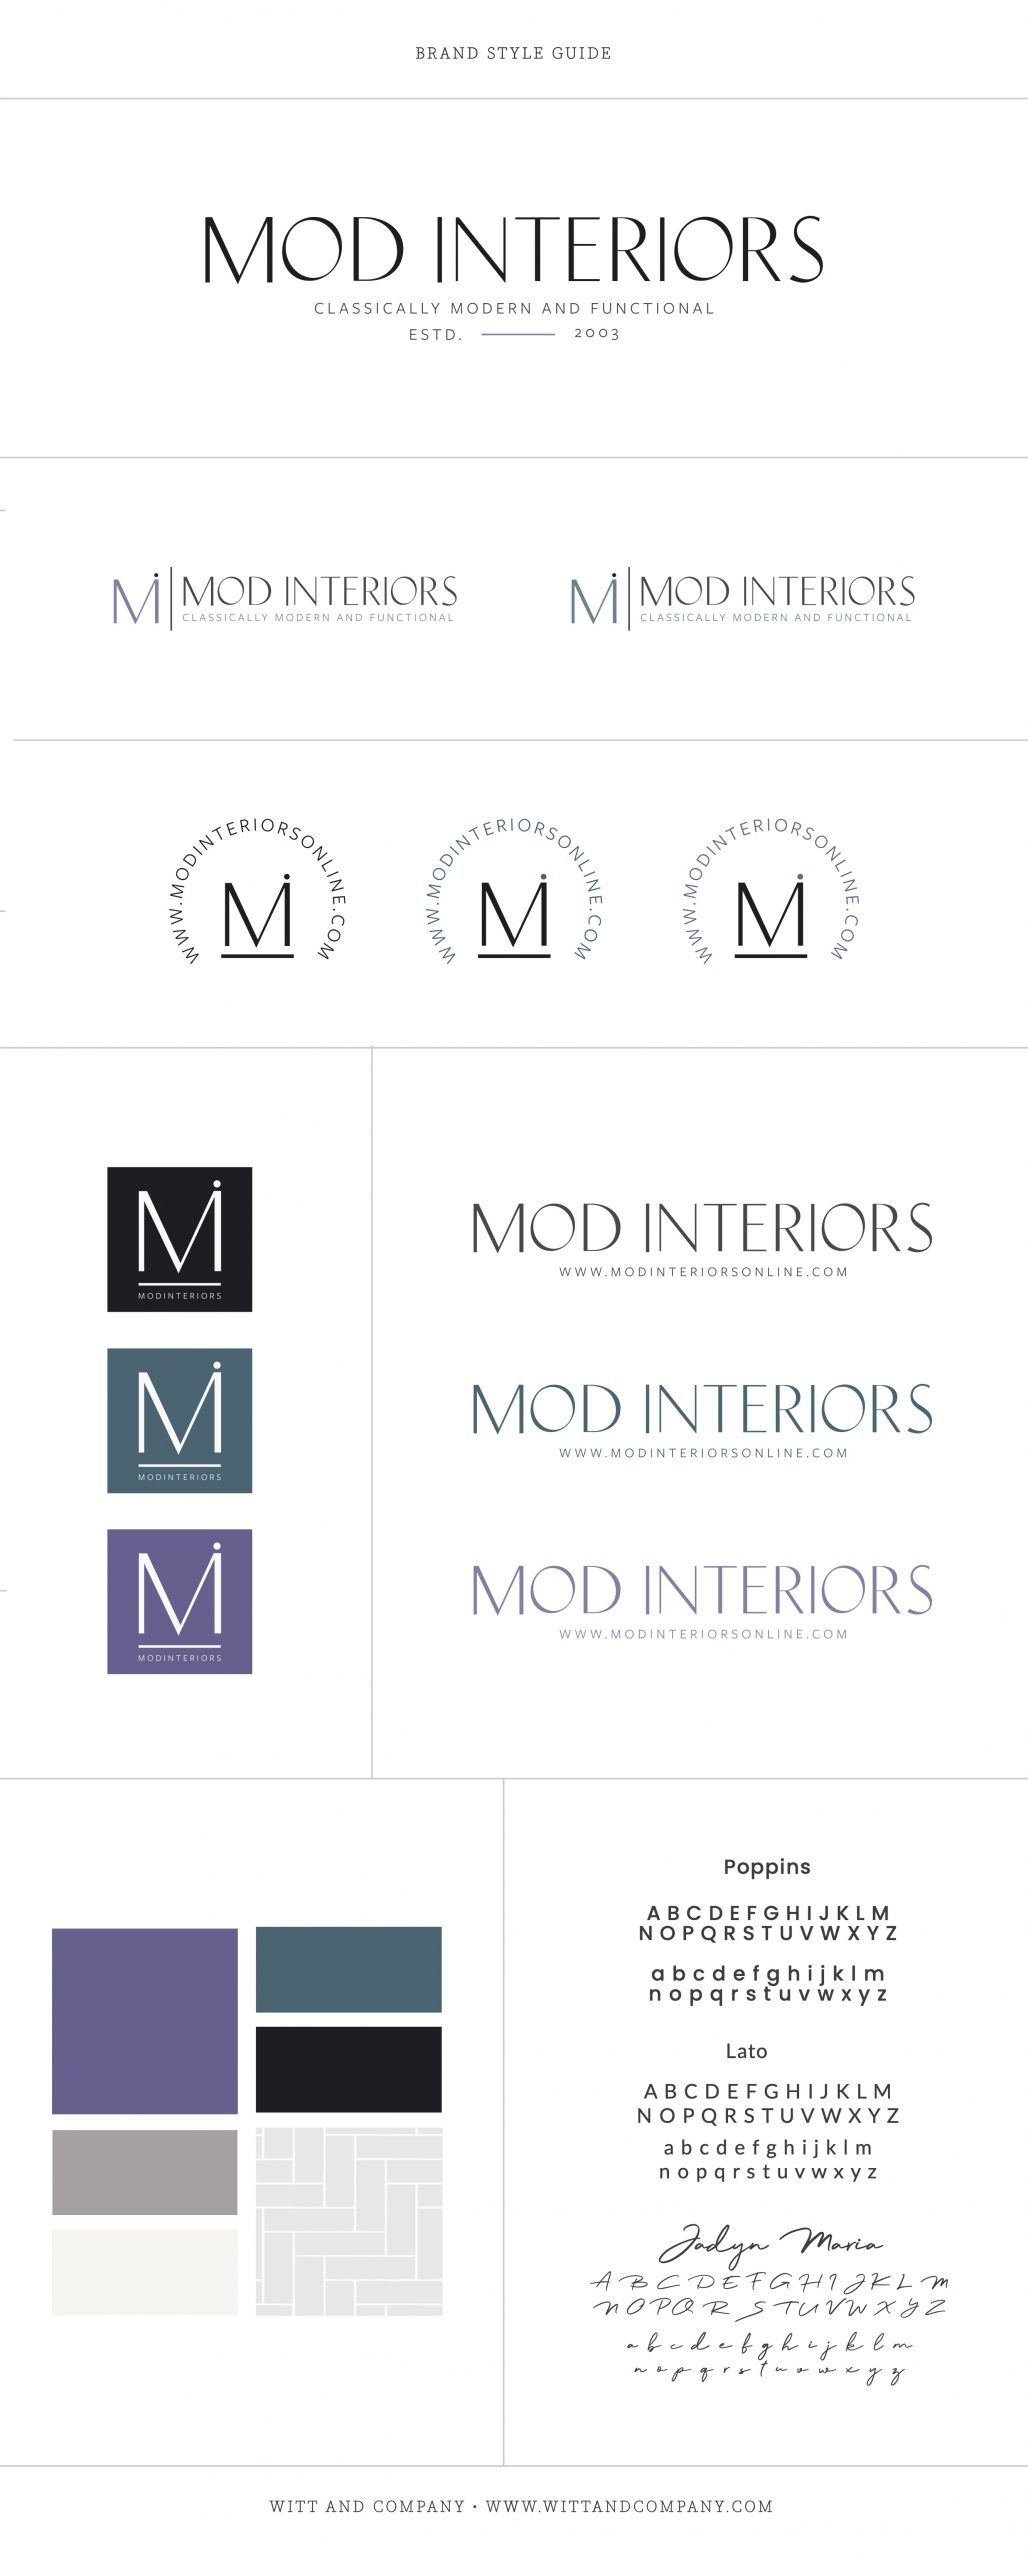 Mod Interiors Custom Brand Design | Witt and Company